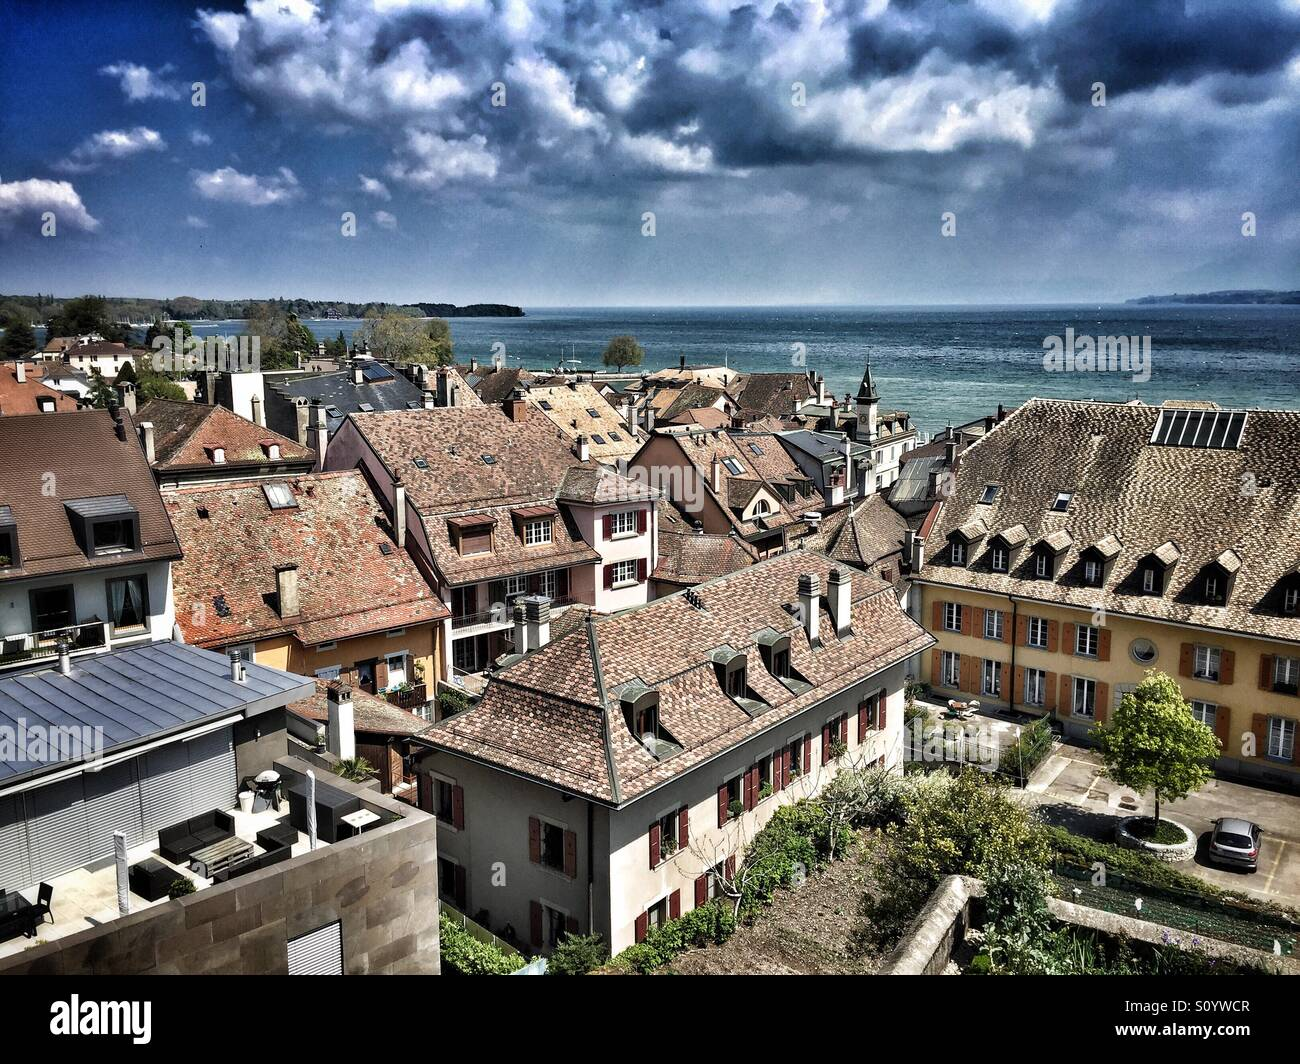 Looking over the old town of Nyon to Lake Geneva and the Alps - Stock Image